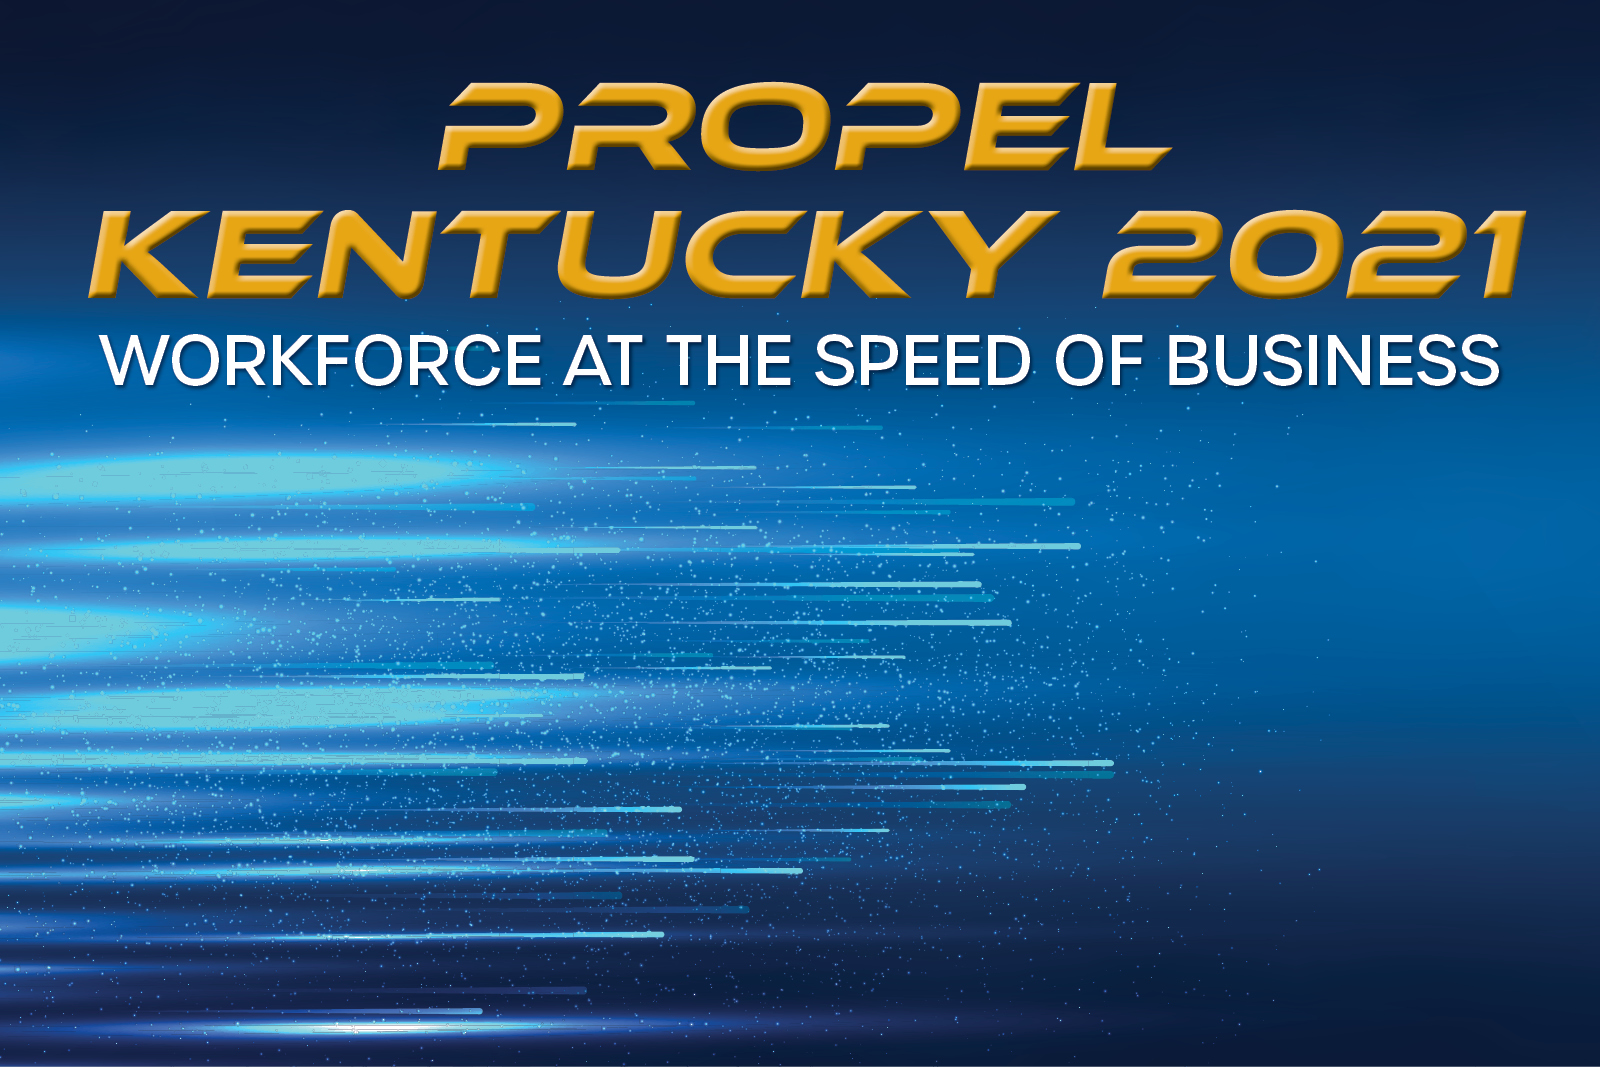 Propel Kentucky 2021: Workforce at the Speed of Business